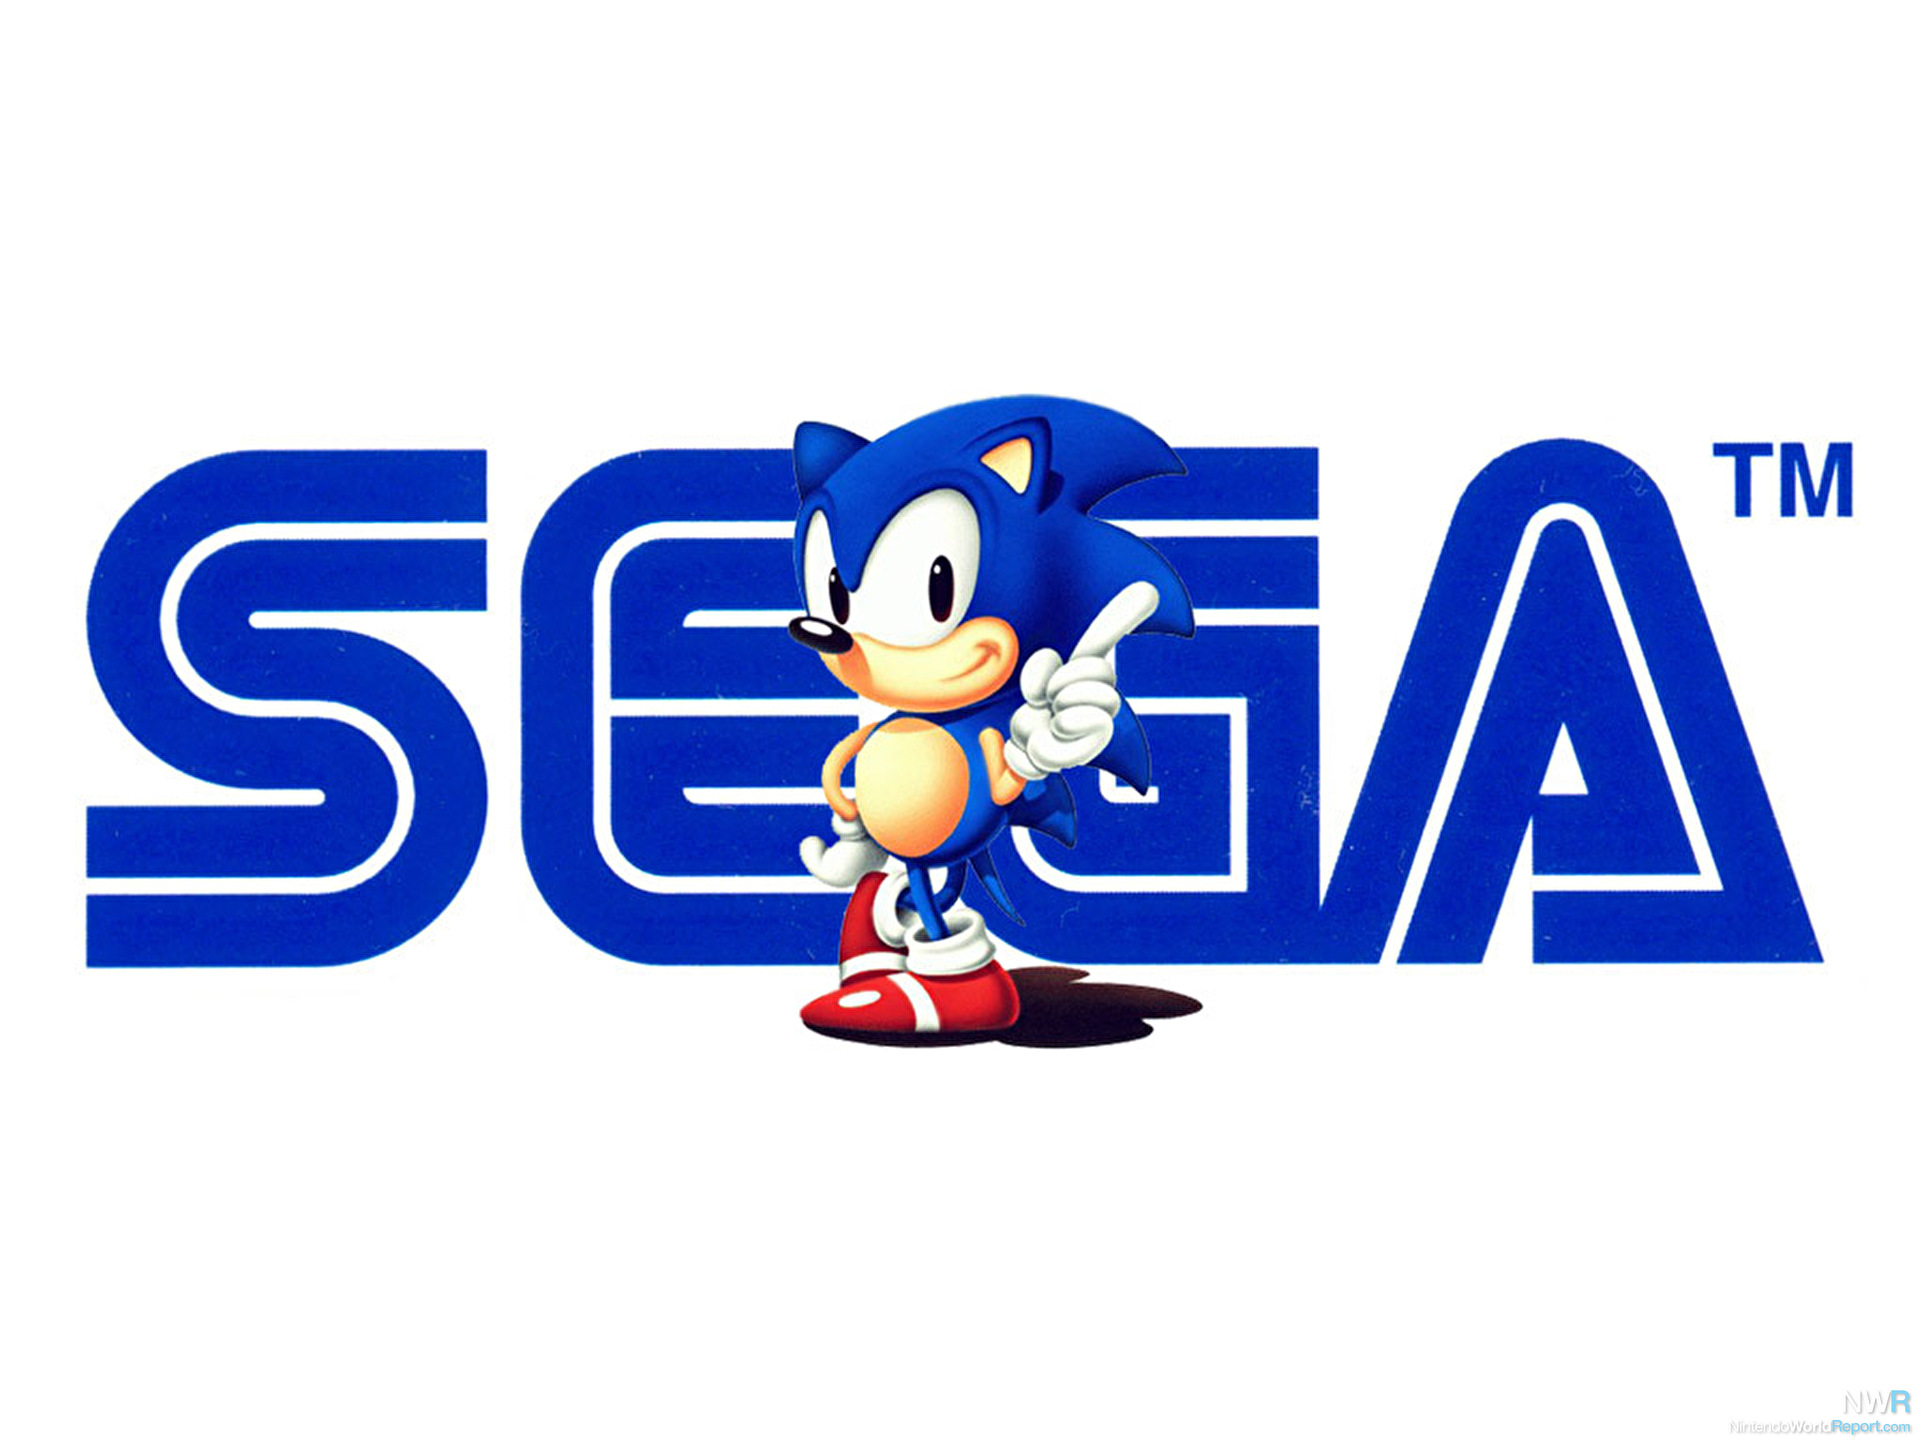 Several Sonic games on the Wii's Virtual Console will be pulled from